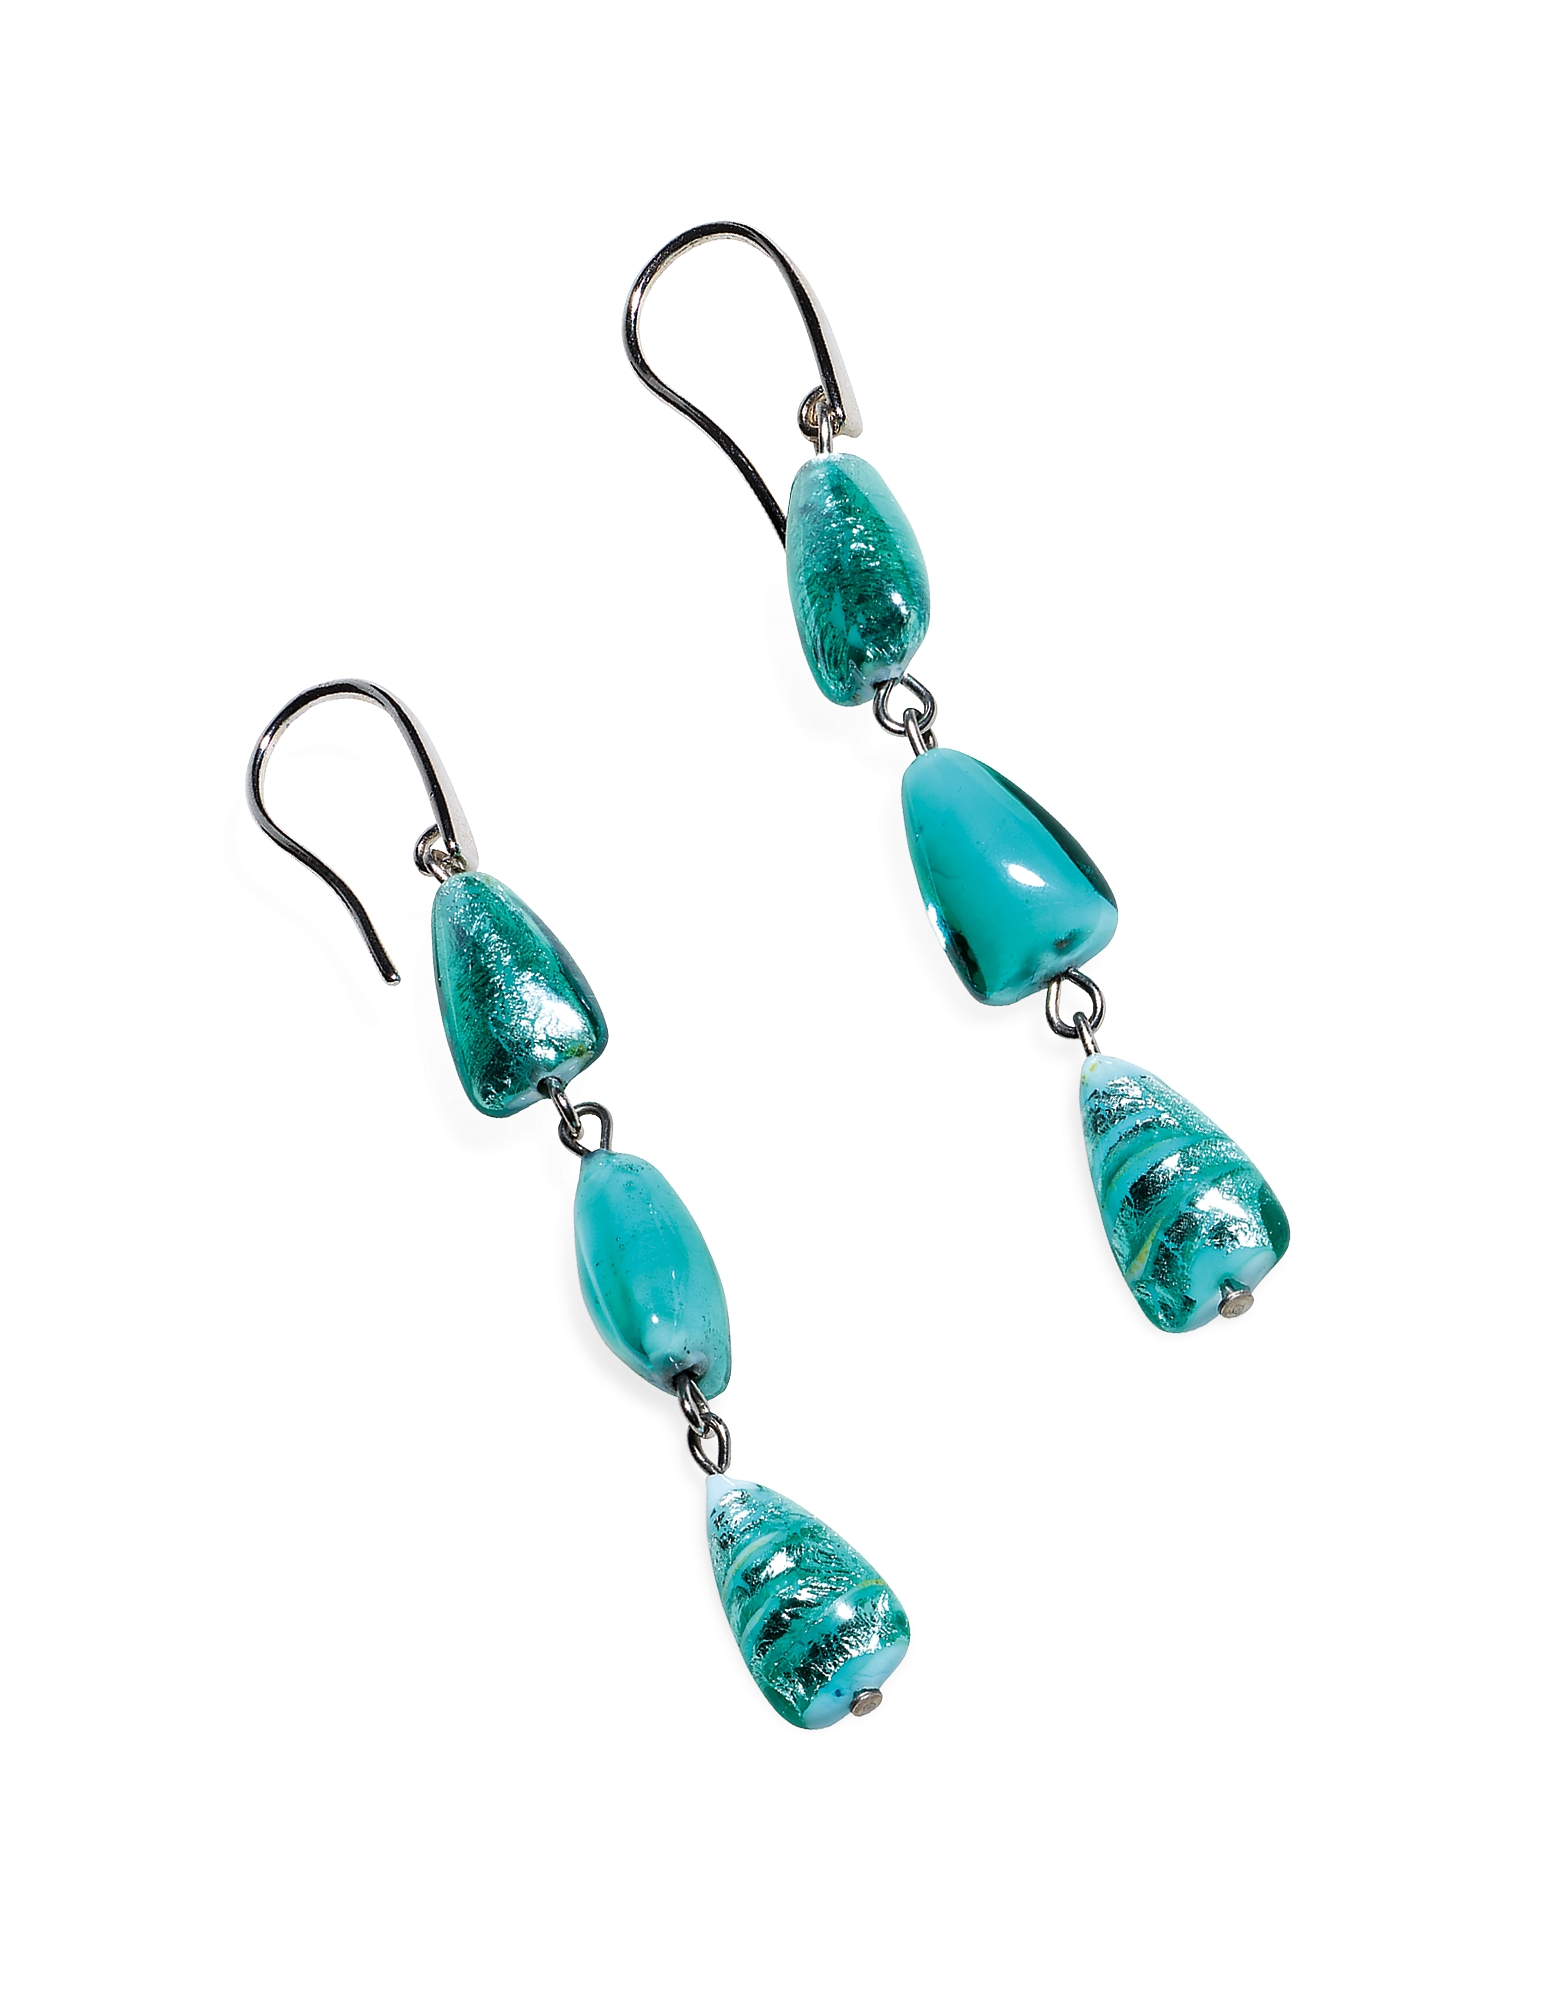 Marina 1 - Turquoise Green Murano Glass and Silver Leaf Dangling Earrings от Forzieri.com INT